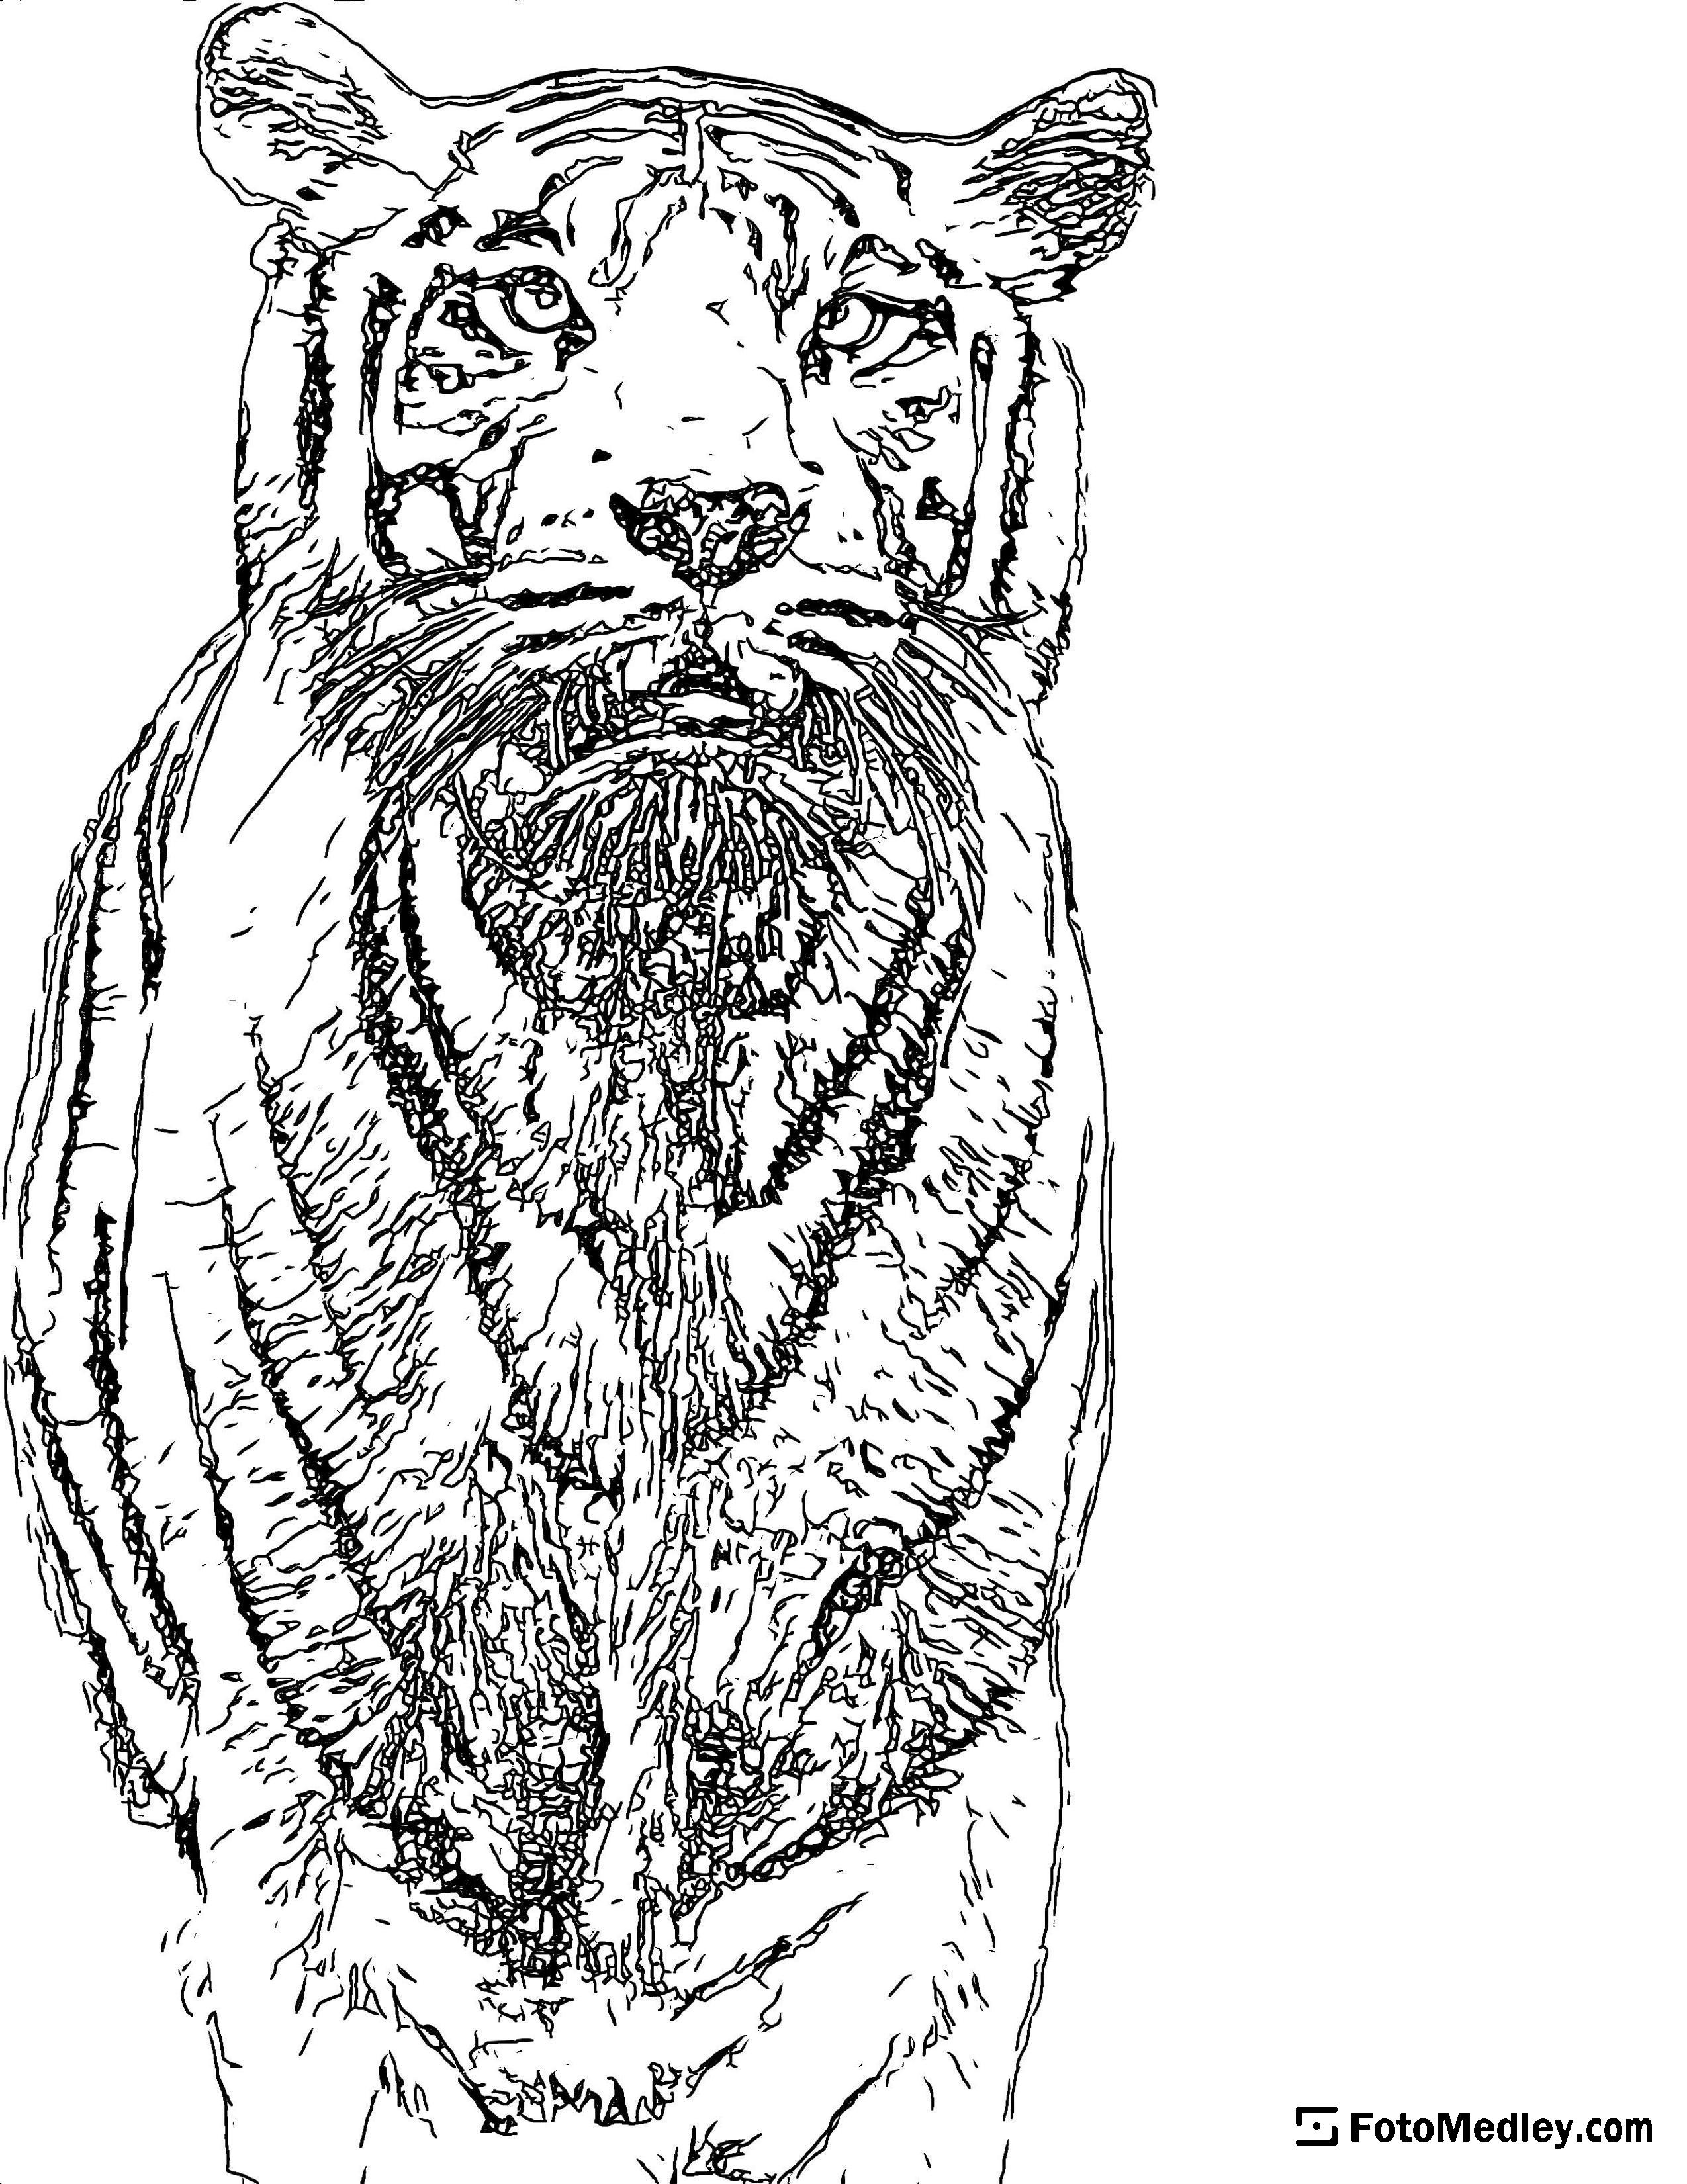 """A coloring page of a beautiful tiger. This was generated with the """"texture"""" image processing option turned on."""